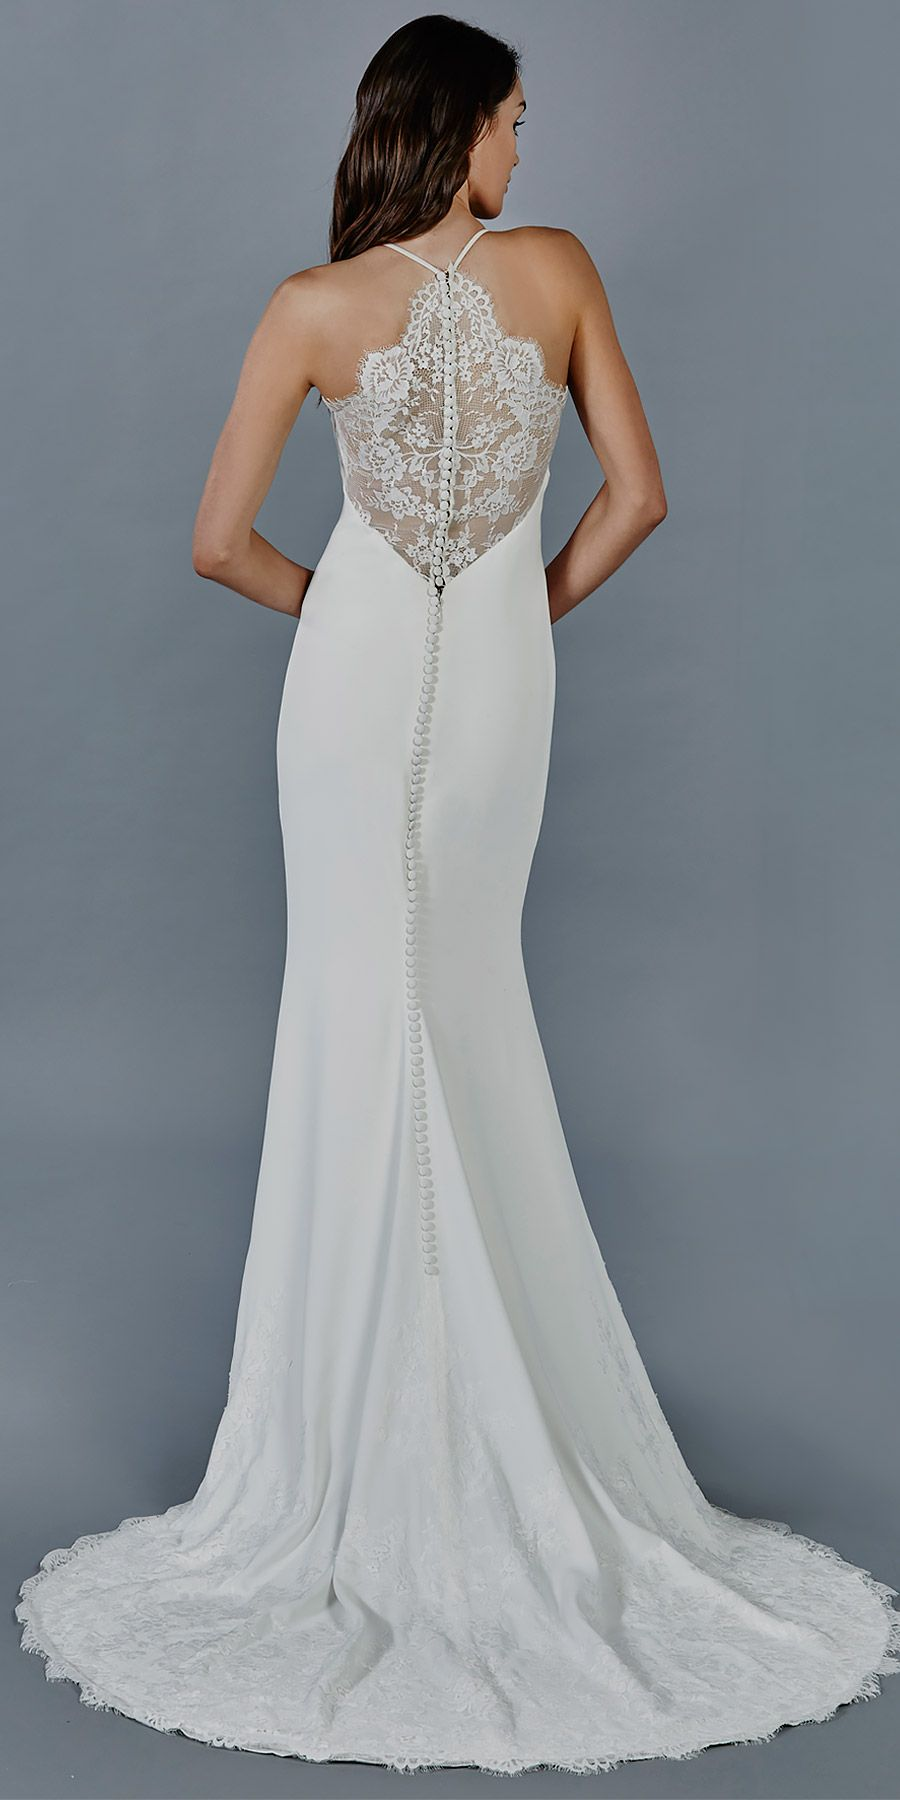 Aria wedding dress by kelly faetanini crepe slim gown with halter